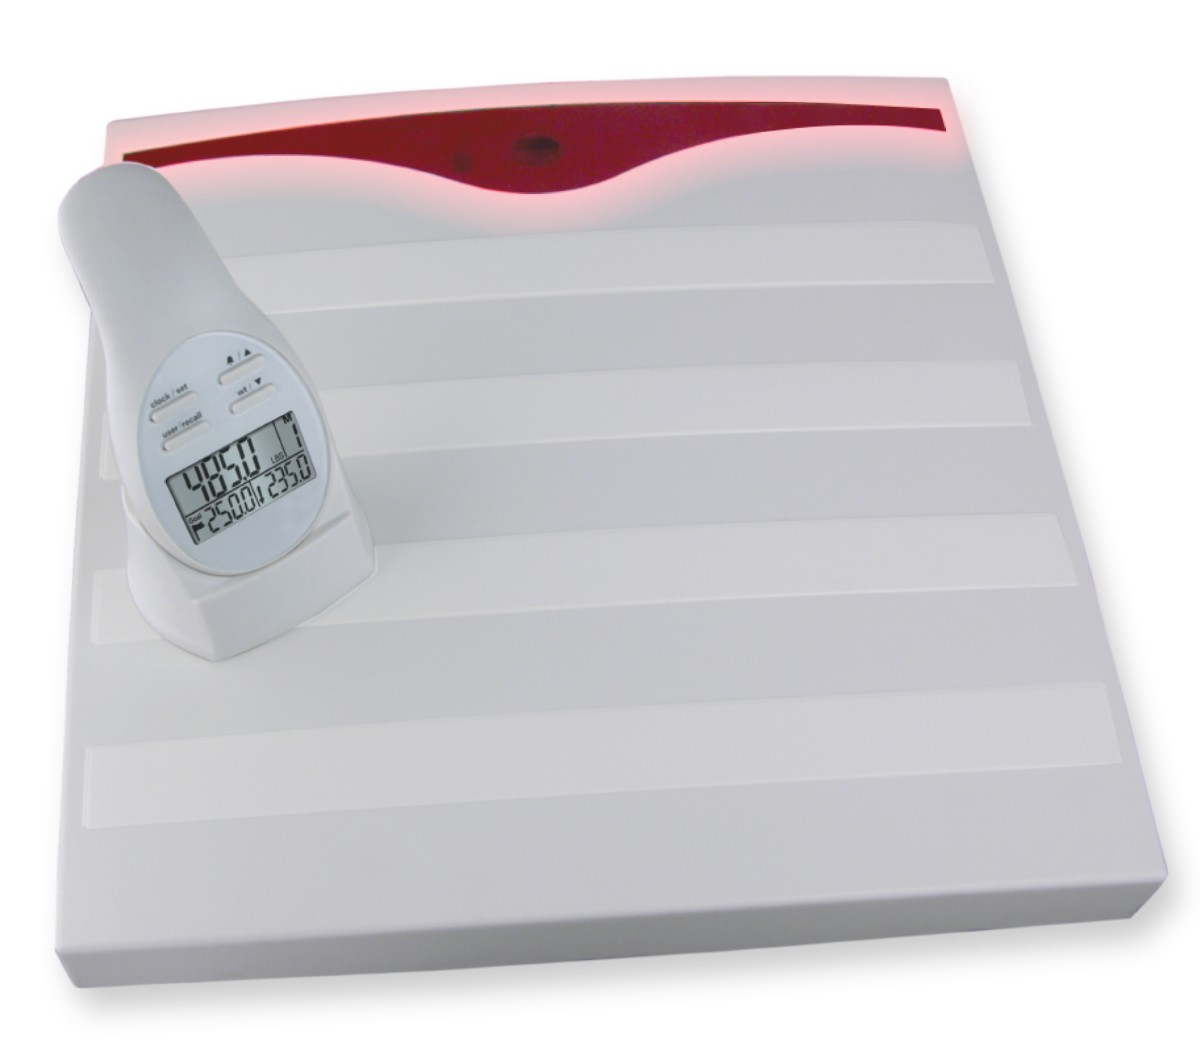 Large capacity bath scale hermell products inc for Large capacity bathroom scale